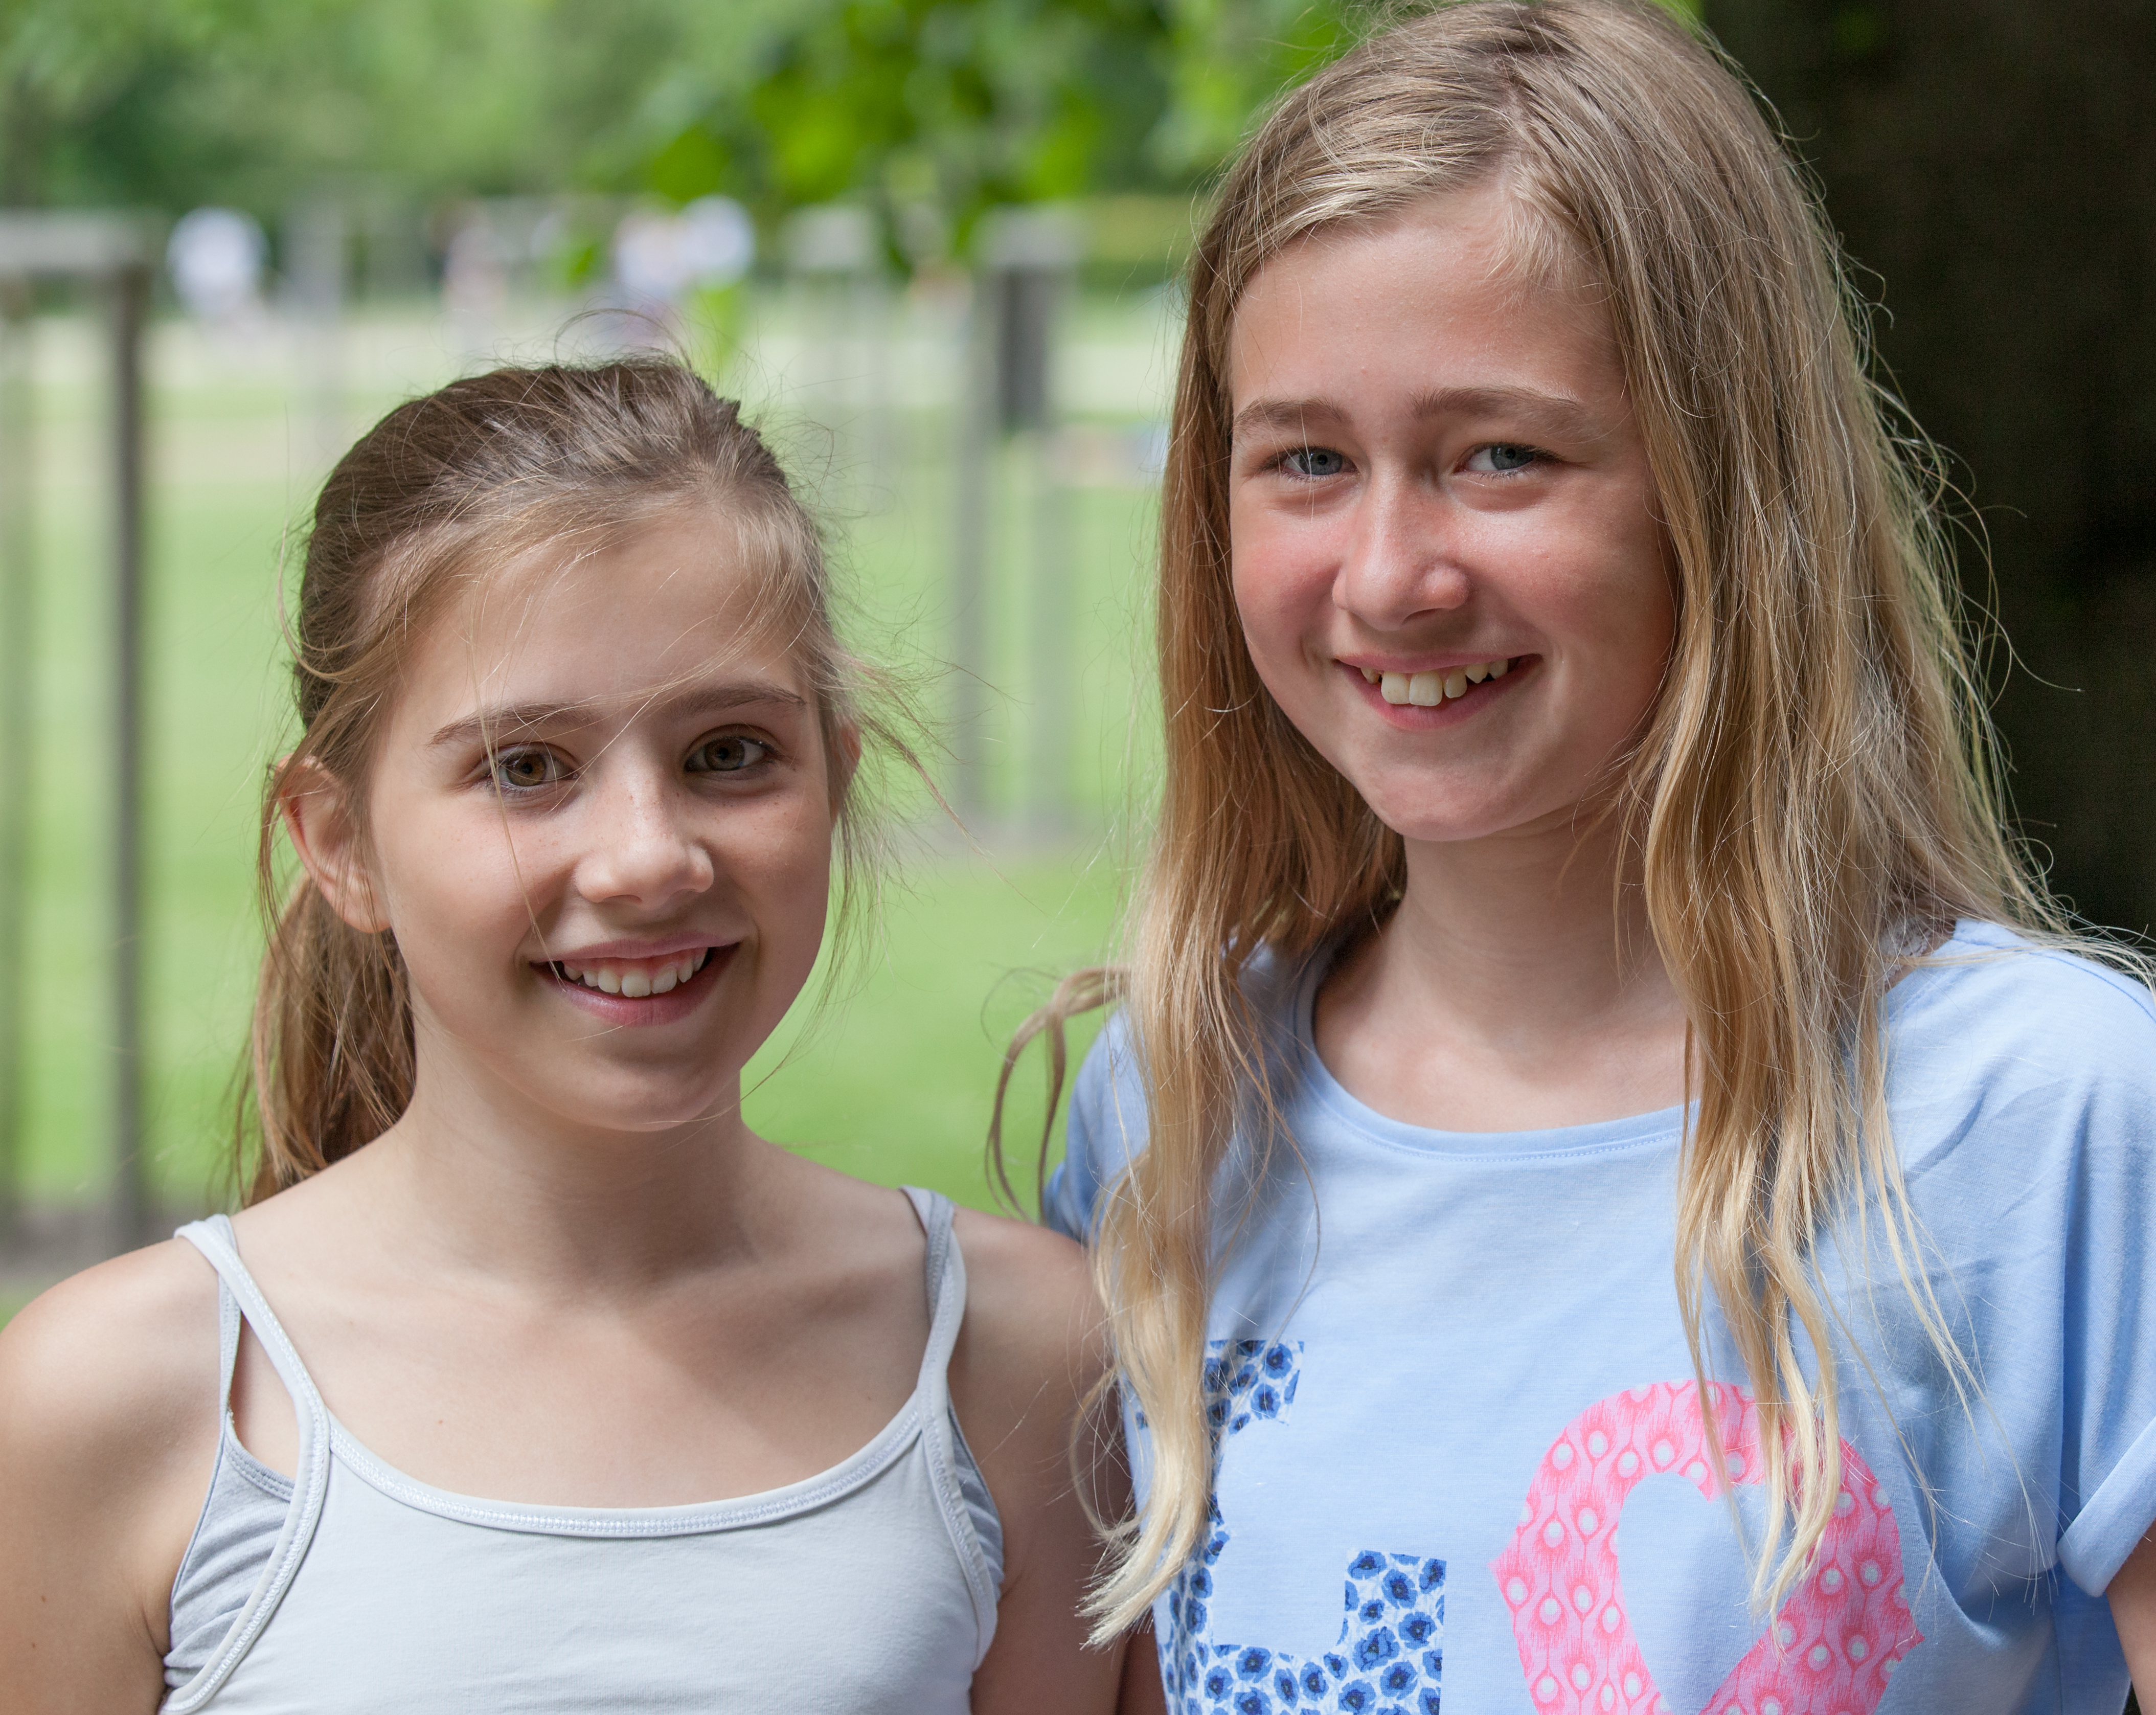 two young girls photographed in Copenhagen, Denmark, in June 2014, image 2/2